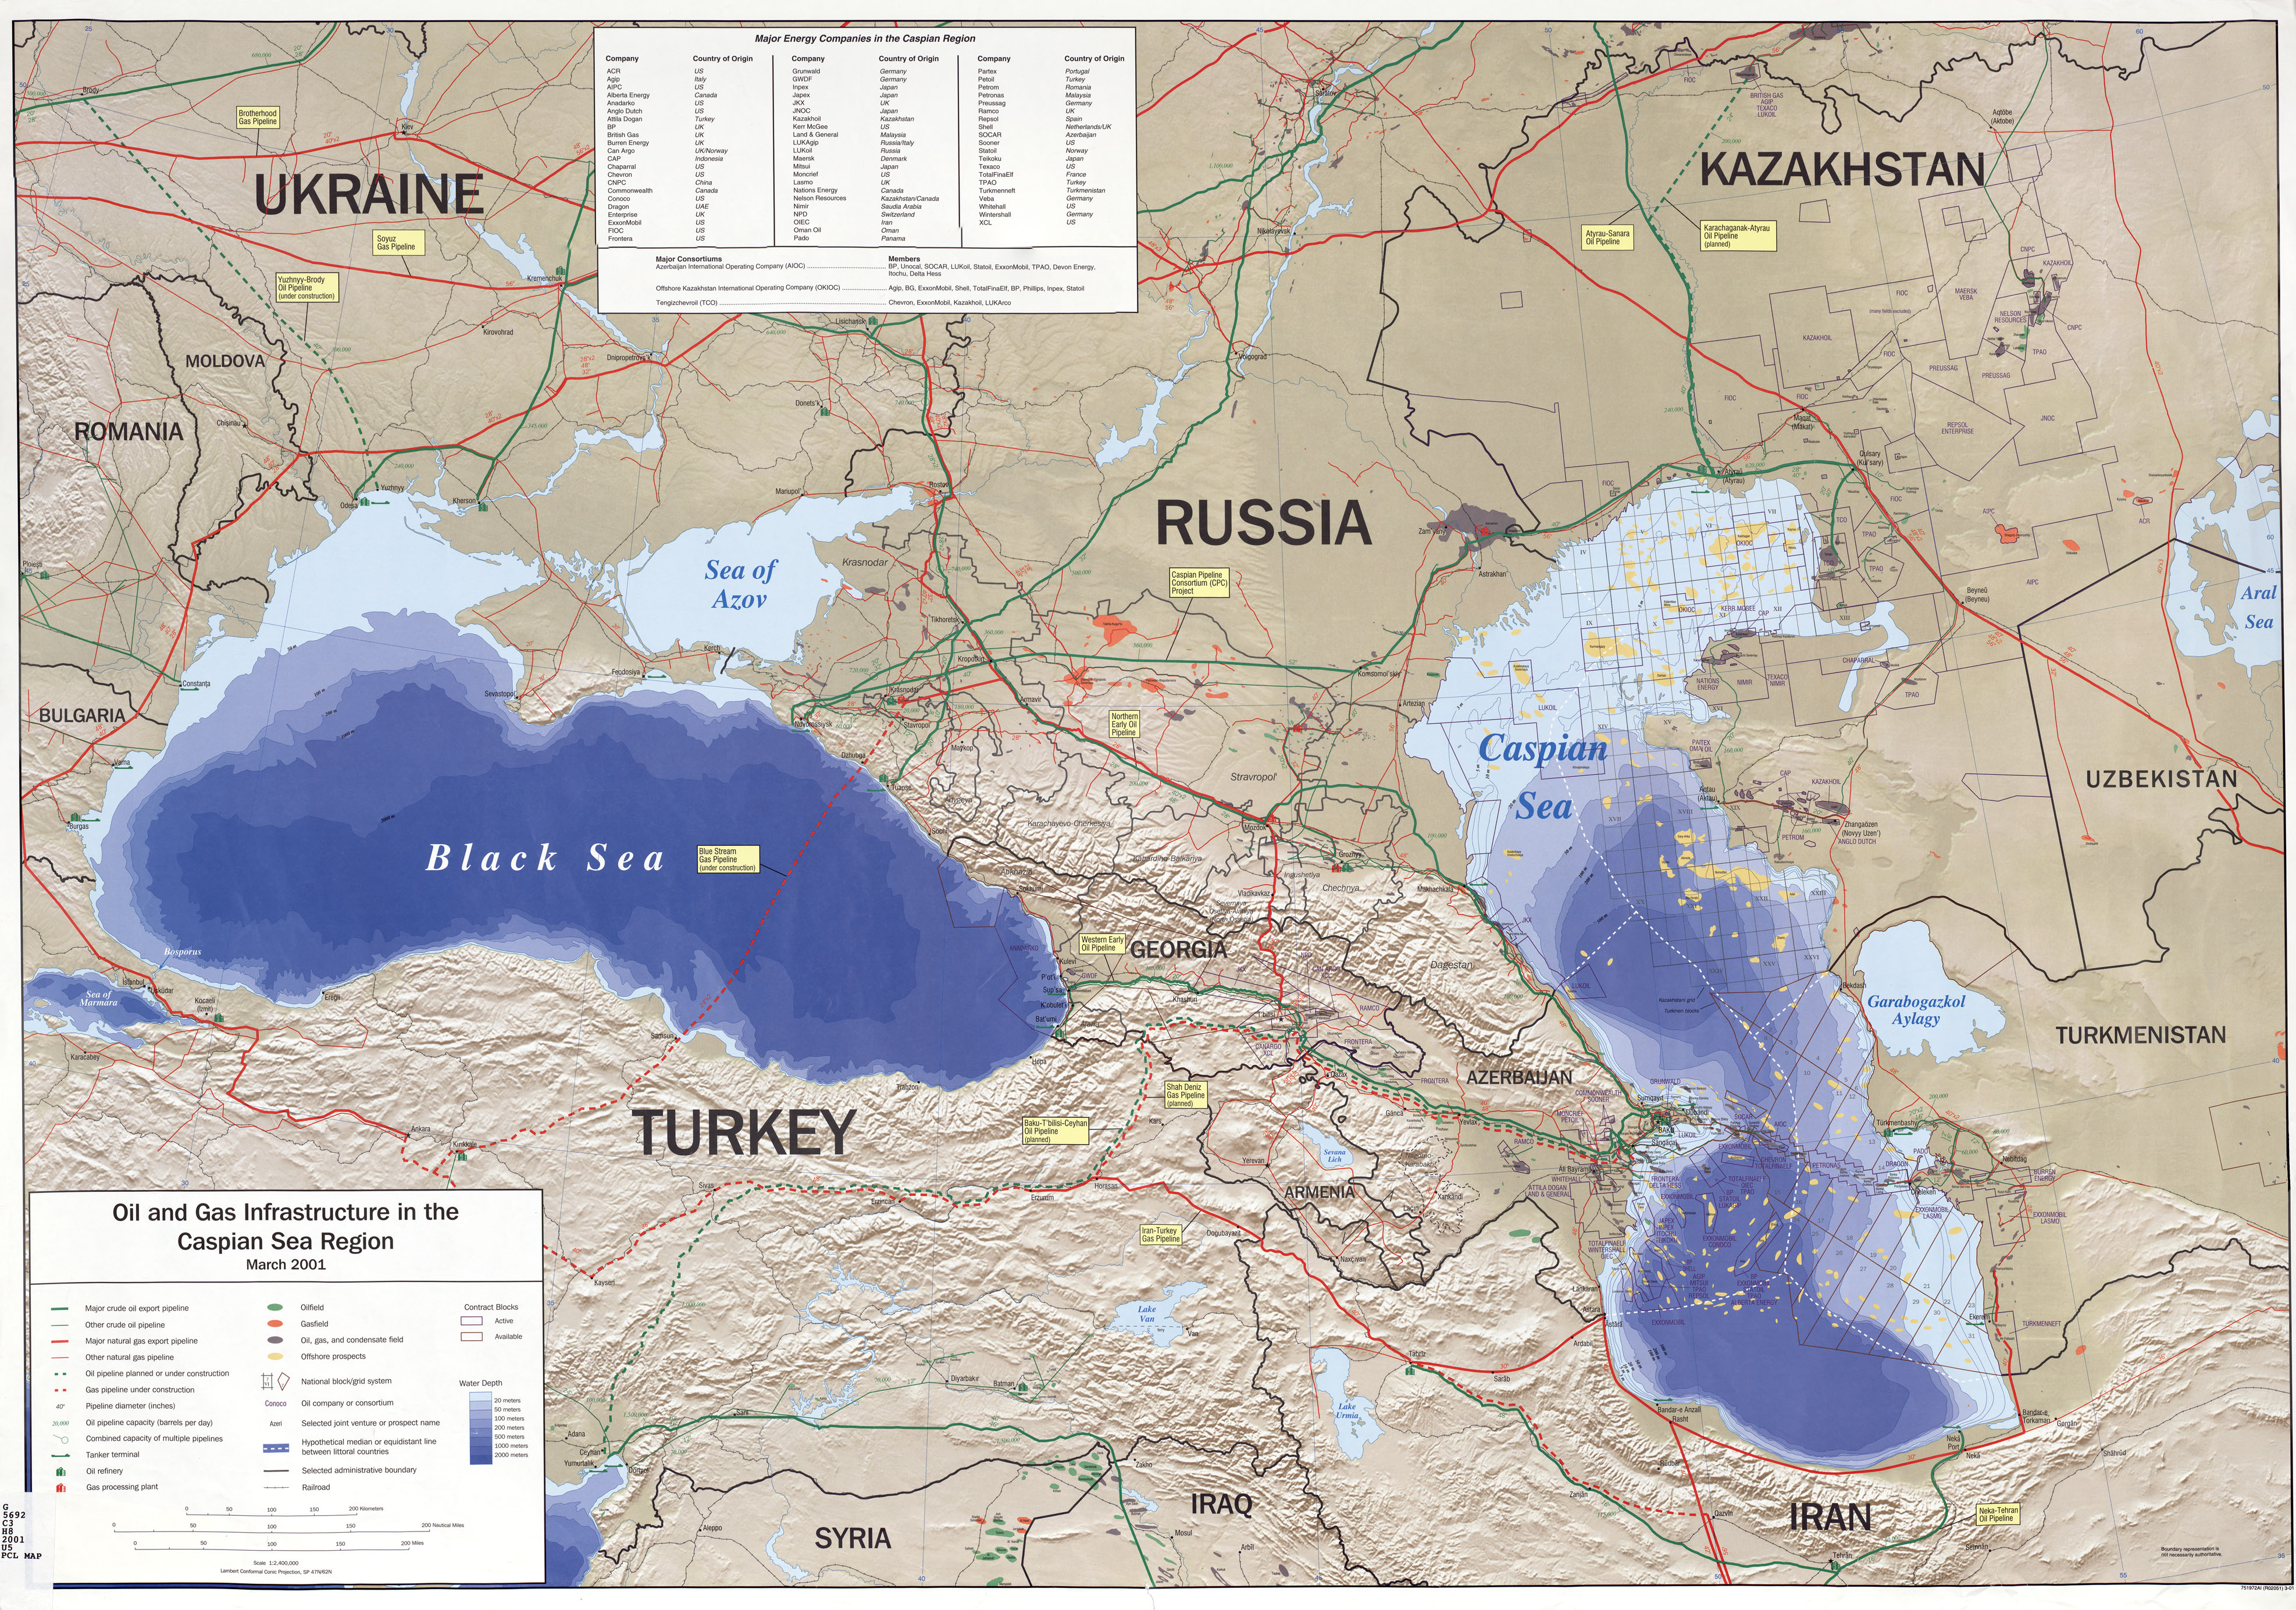 Oil and gas in the Caspian Sea and Black Sea Regions 2001